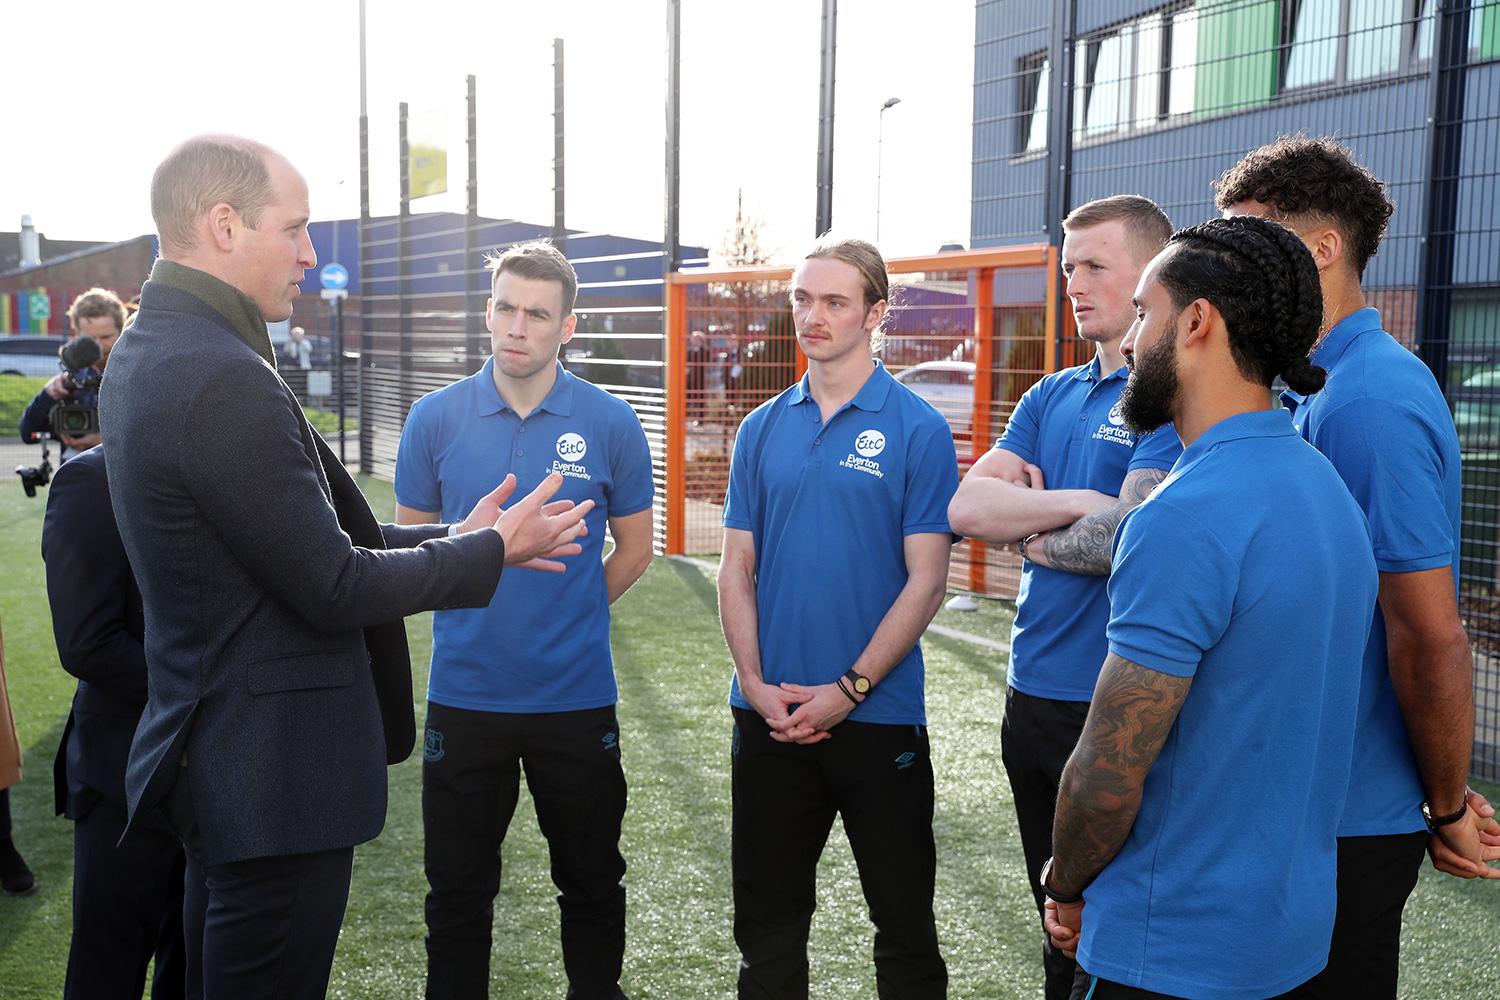 Prince William, Duke of Cambridge talks to players of Everton F.C. Seamus Coleman, Tom Davies, Jordan Pickford, Dominic Calvert-Lewin and Theo Walcott during his visit Everton Football Club's official charity Everton in the Community as part of the Heads Up campaign on January 30, 2020 in Liverpool, England. HRH is President of the Football Association